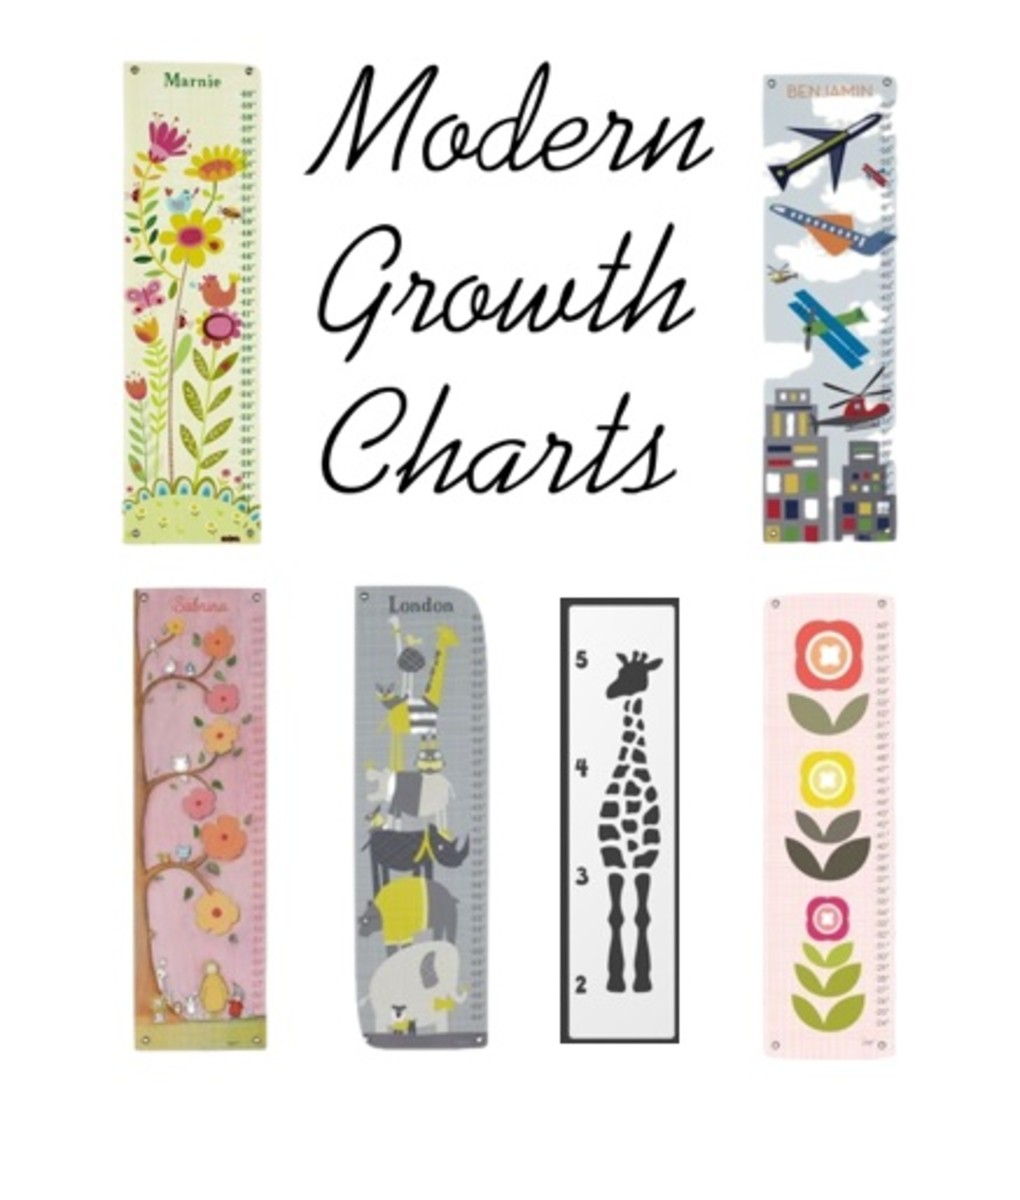 Gear girl modern growth charts momtrends modern growth charts nvjuhfo Gallery